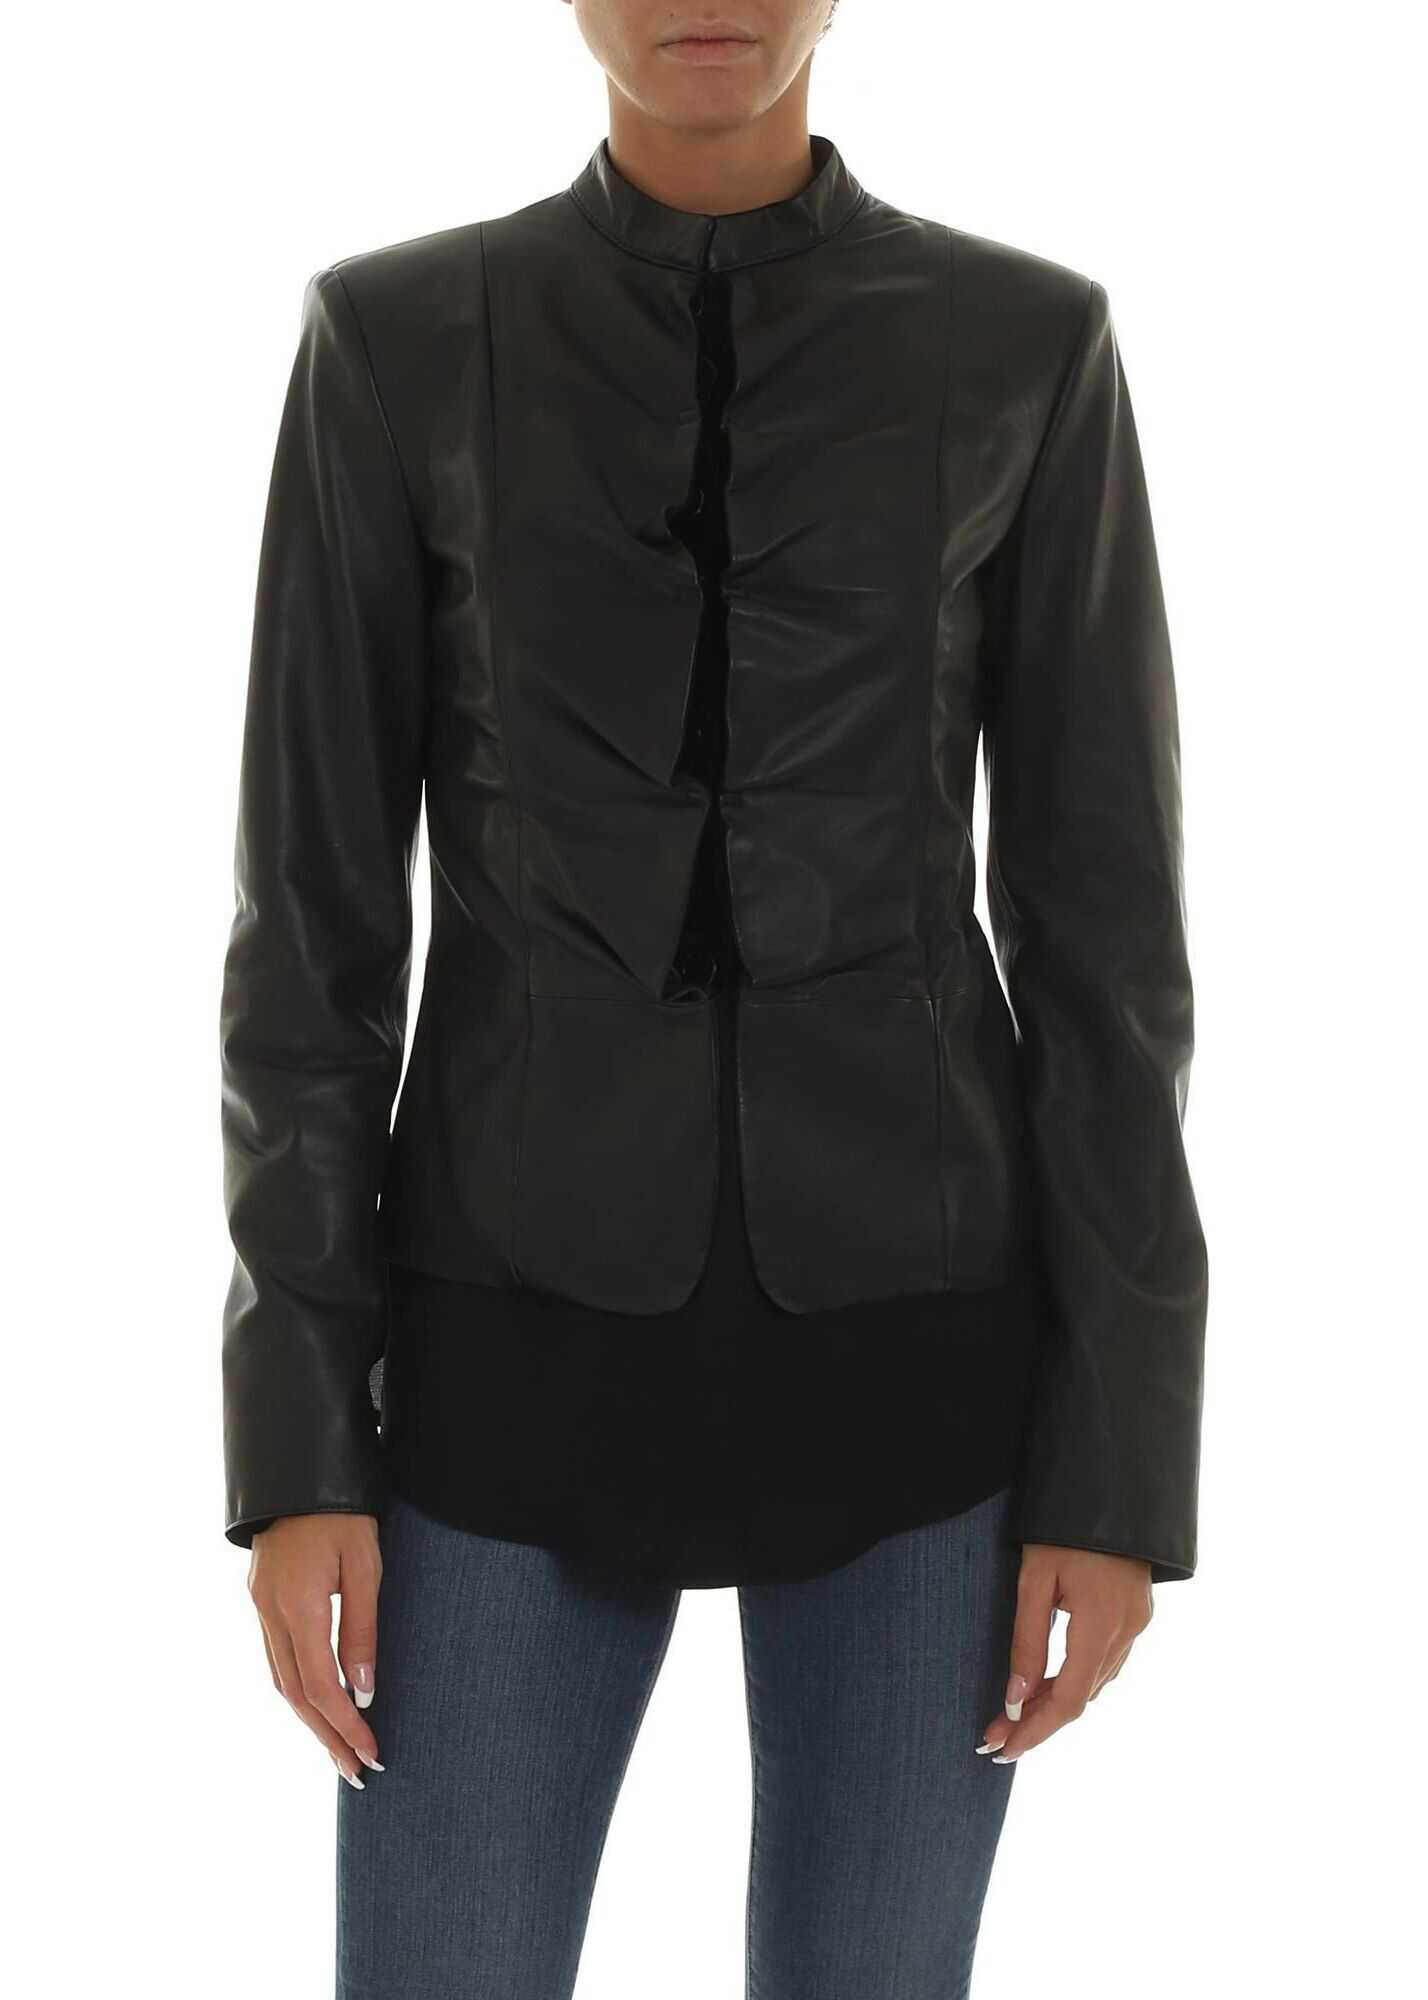 Emporio Armani Leather Outerwear Jacket BLACK